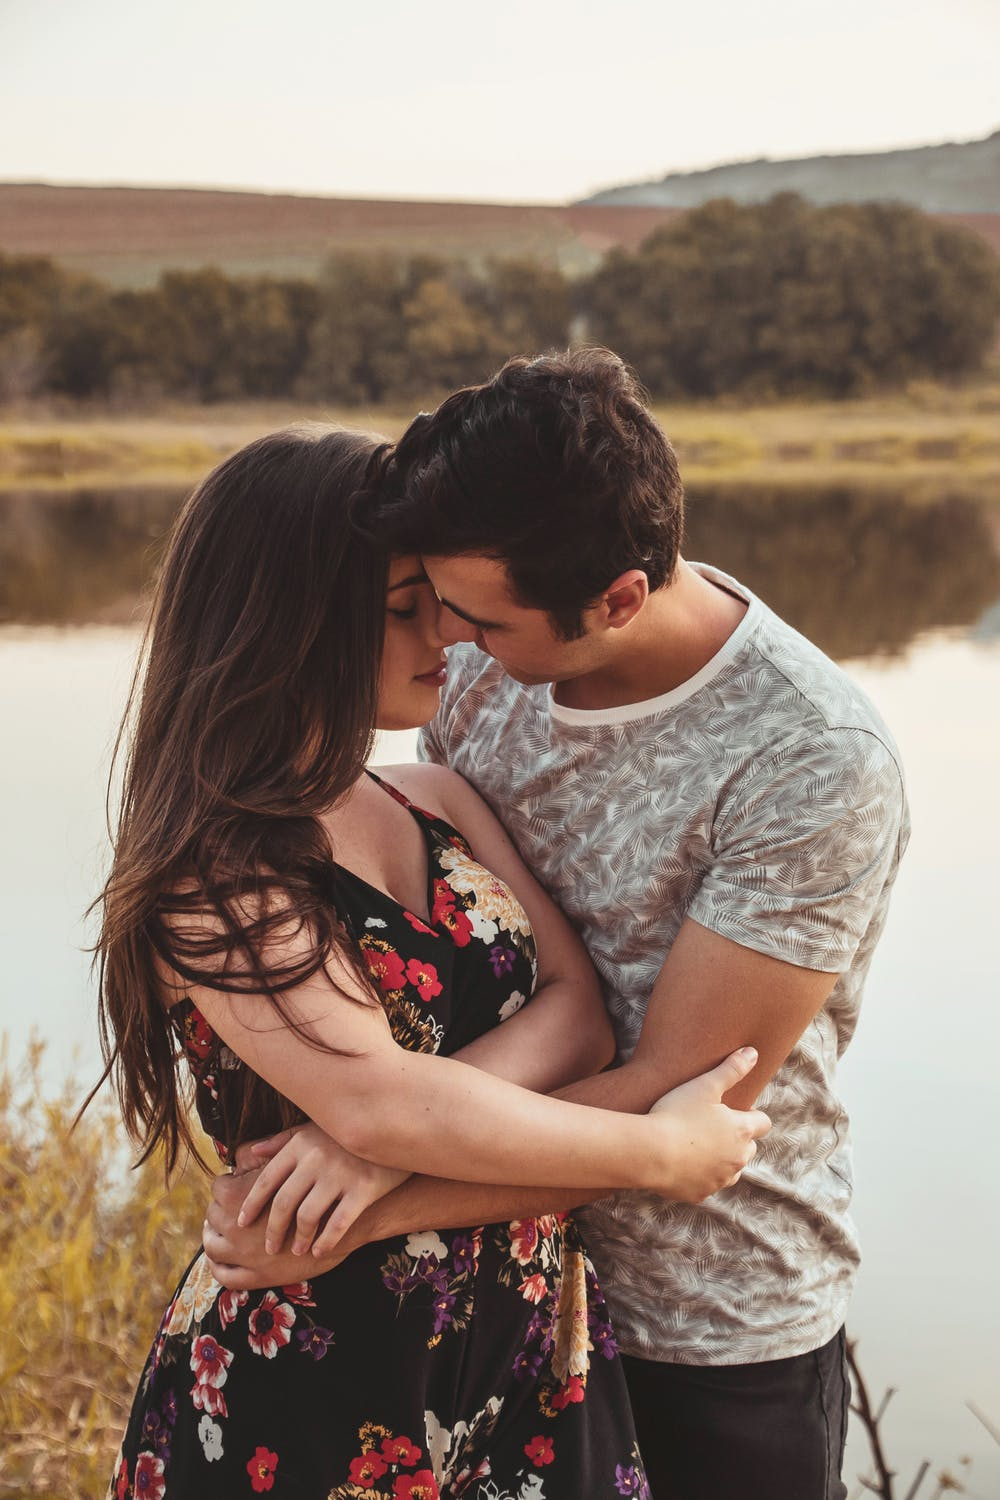 Man and woman hugging near river | Photo: Pexels